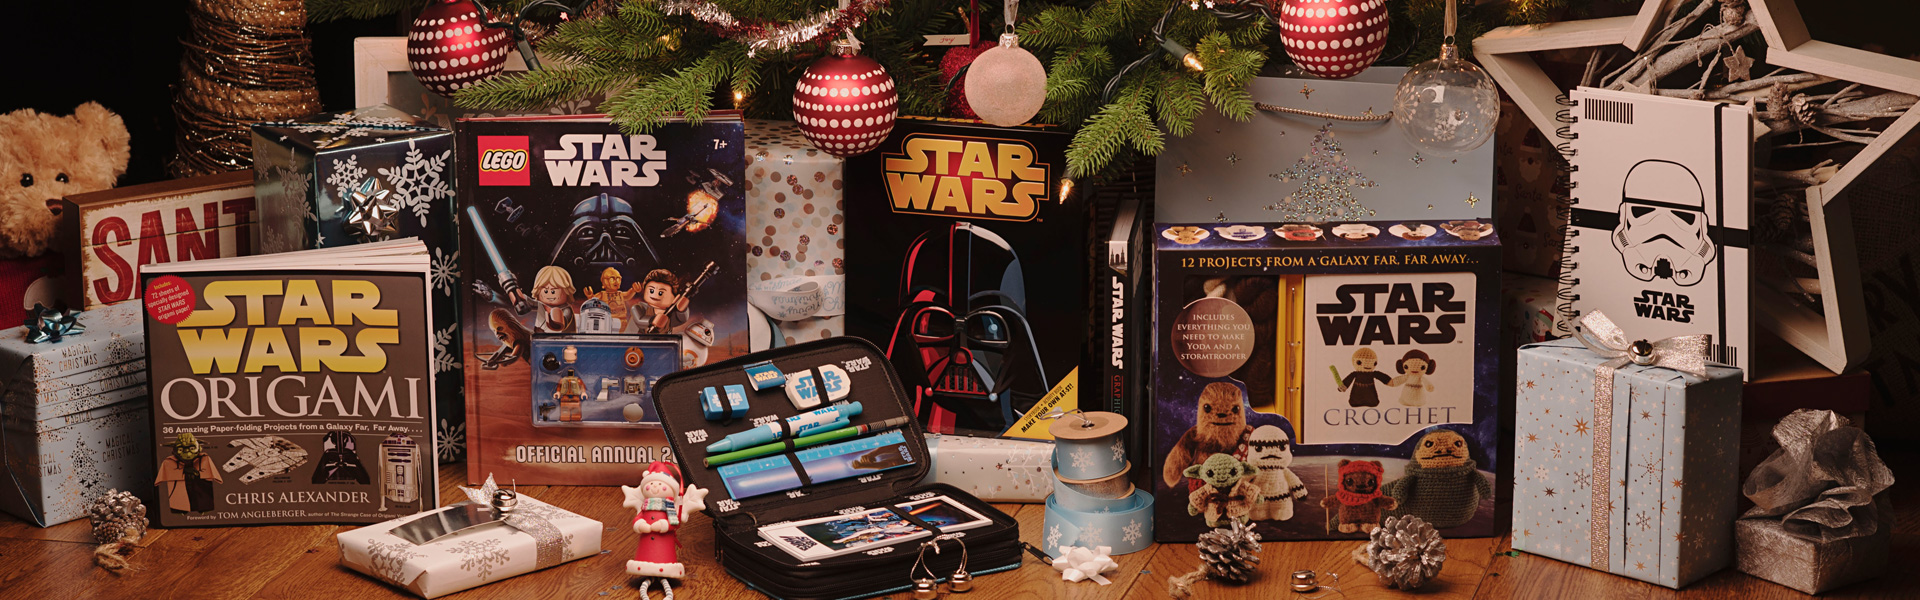 Intergalactic Gifts for Star Wars Fans